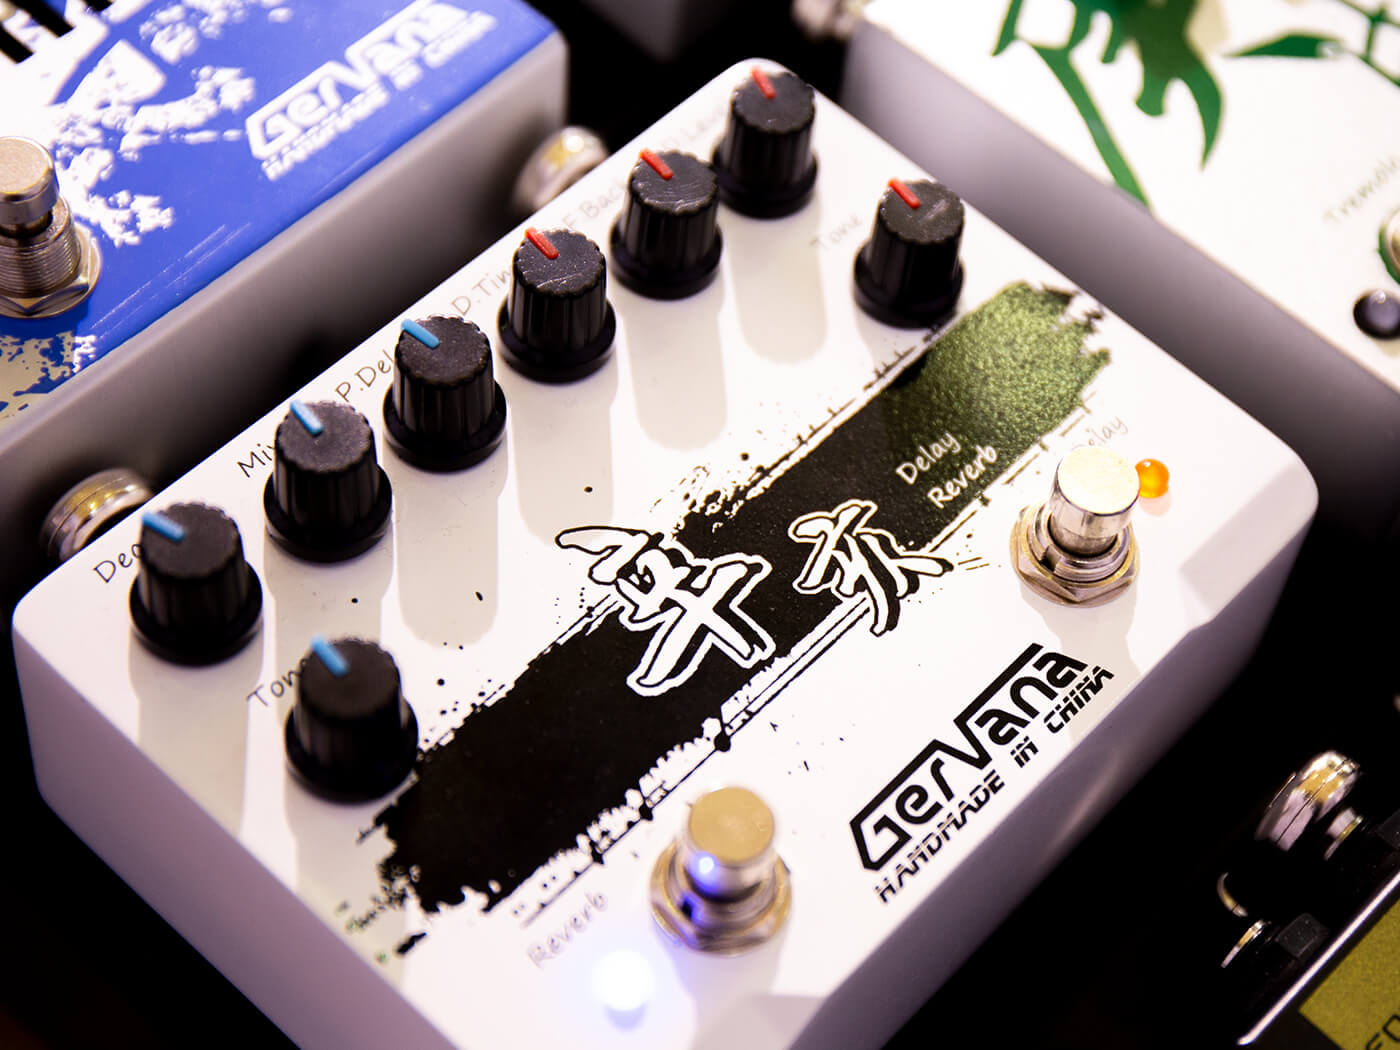 gervana delay reverb